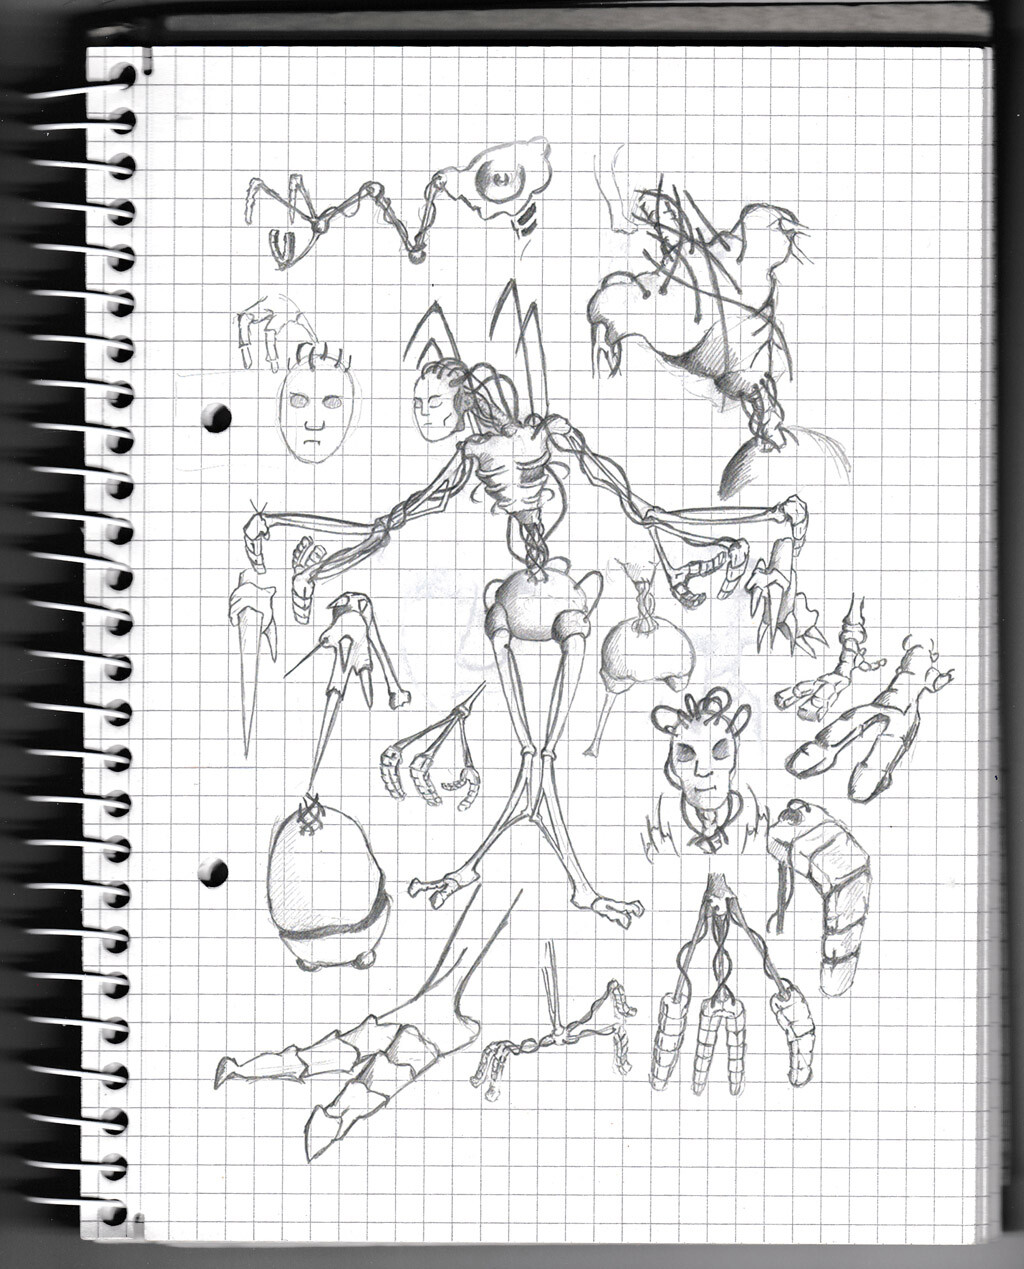 character, sketch, pencil, monster, creature, cyborg, concept,